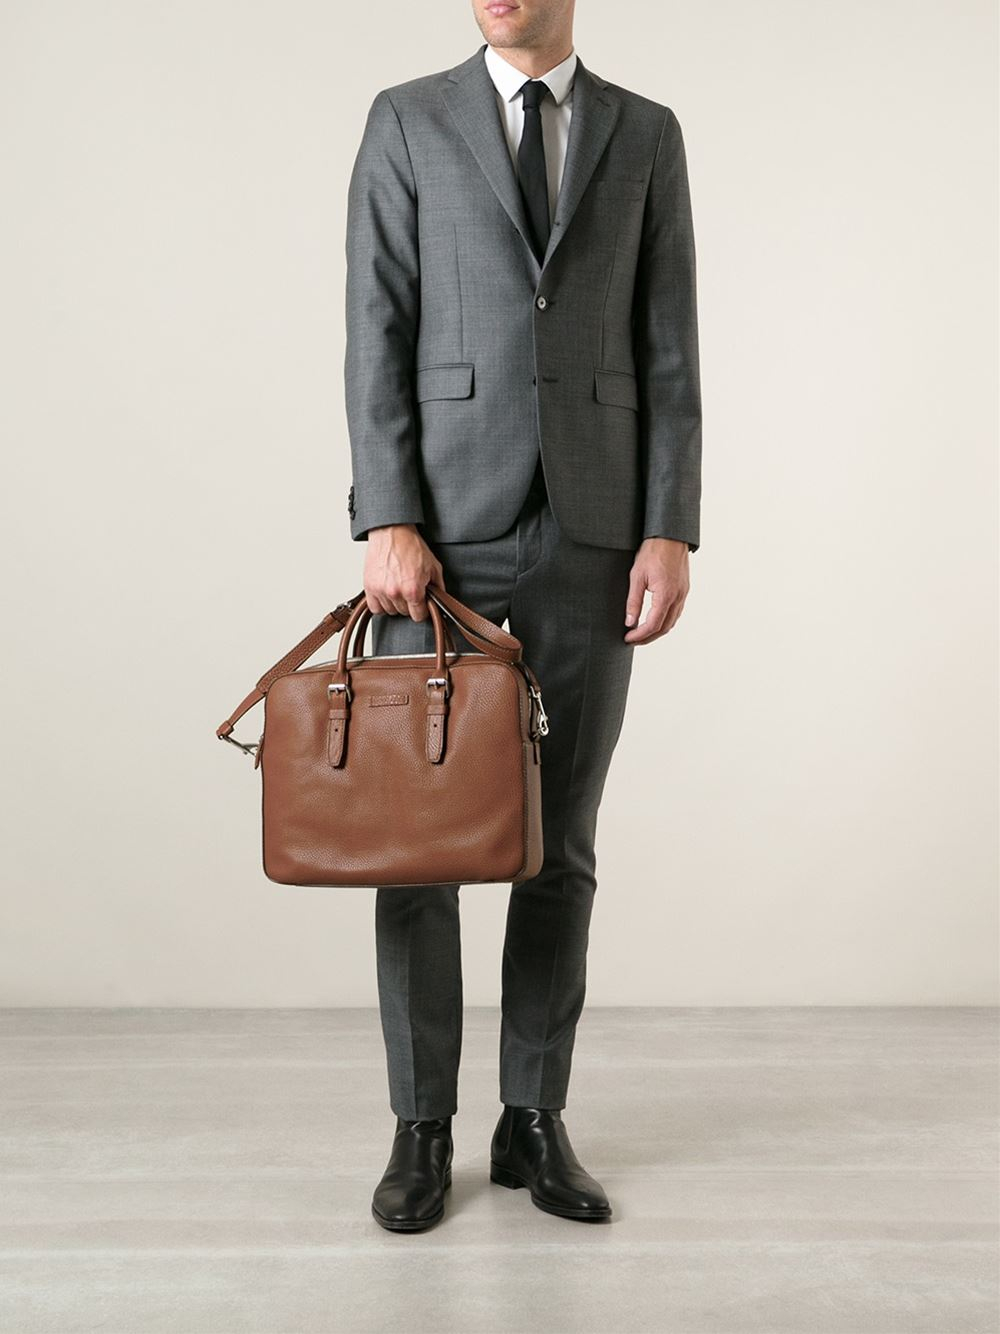 452f2cee4b67 Michael Kors Bryant Briefcase in Brown for Men - Lyst